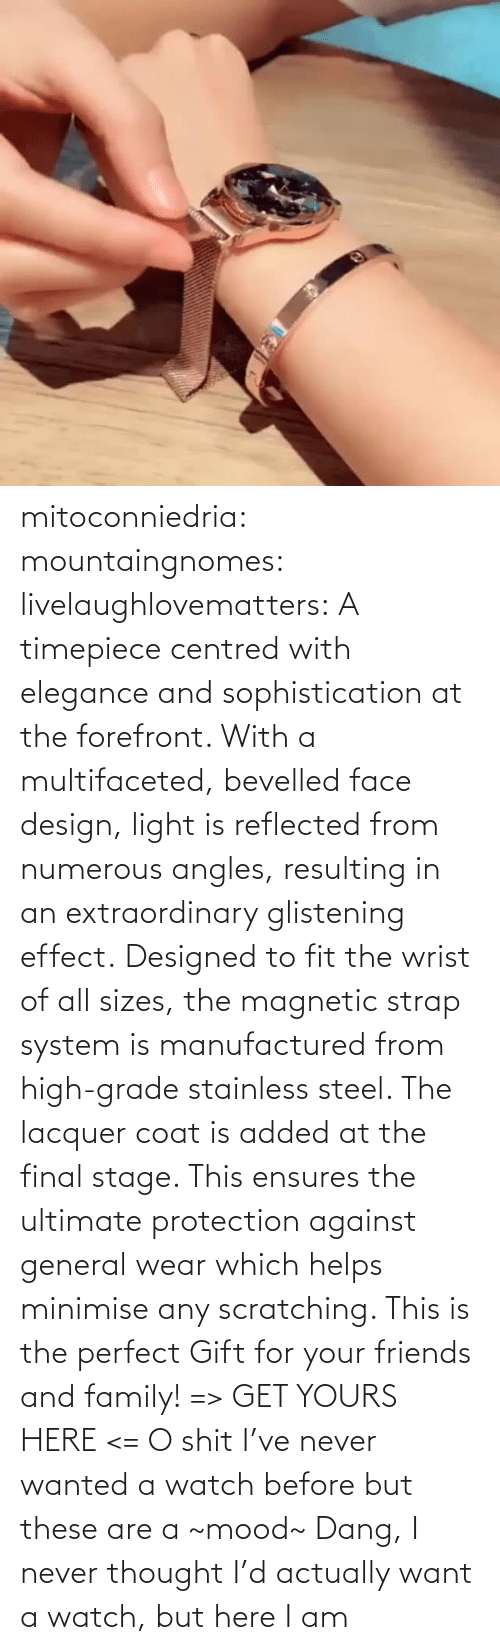 system: mitoconniedria: mountaingnomes:   livelaughlovematters:  A timepiece centred with elegance and sophistication at the forefront. With a multifaceted, bevelled face design, light is reflected from numerous angles, resulting in an extraordinary glistening effect. Designed to fit the wrist of all sizes, the magnetic strap system is manufactured from high-grade stainless steel. The lacquer coat is added at the final stage. This ensures the ultimate protection against general wear which helps minimise any scratching. This is the perfect Gift for your friends and family! => GET YOURS HERE <=  O shit I've never wanted a watch before but these are a ~mood~    Dang, I never thought I'd actually want a watch, but here I am